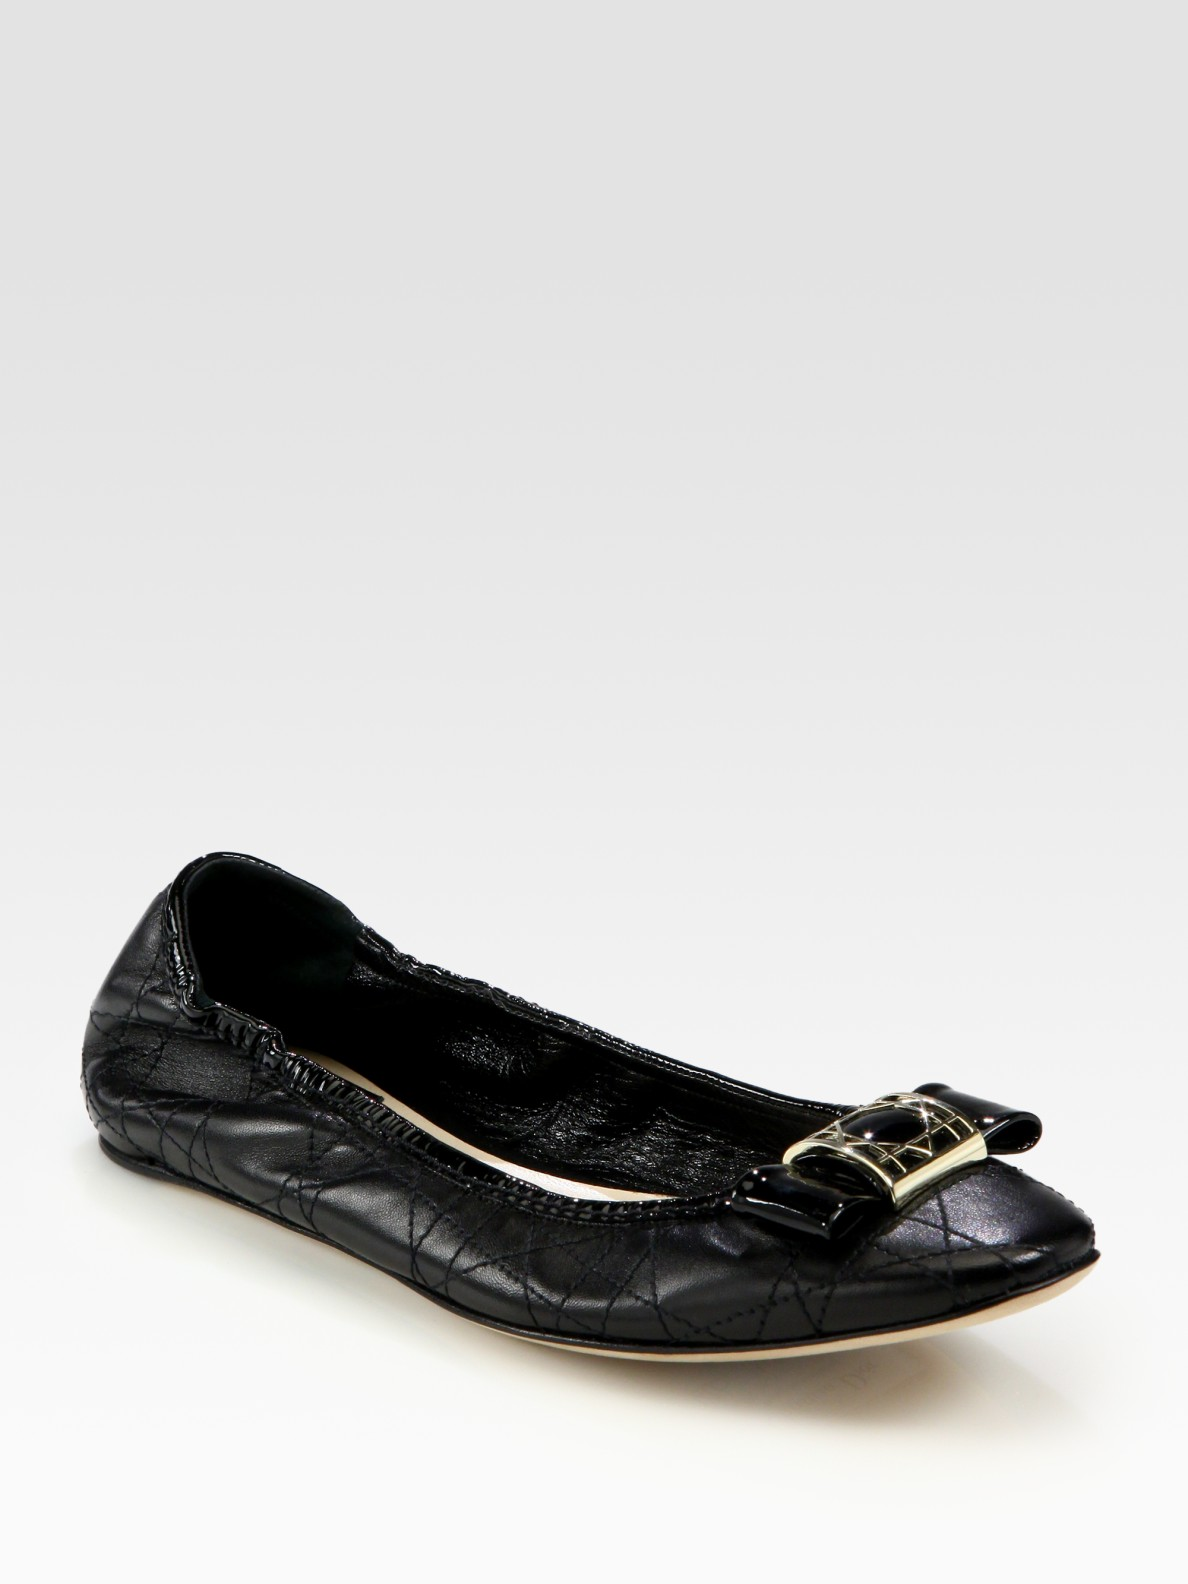 Dior Patent Leather Ballet Flats EIhSWPYwds